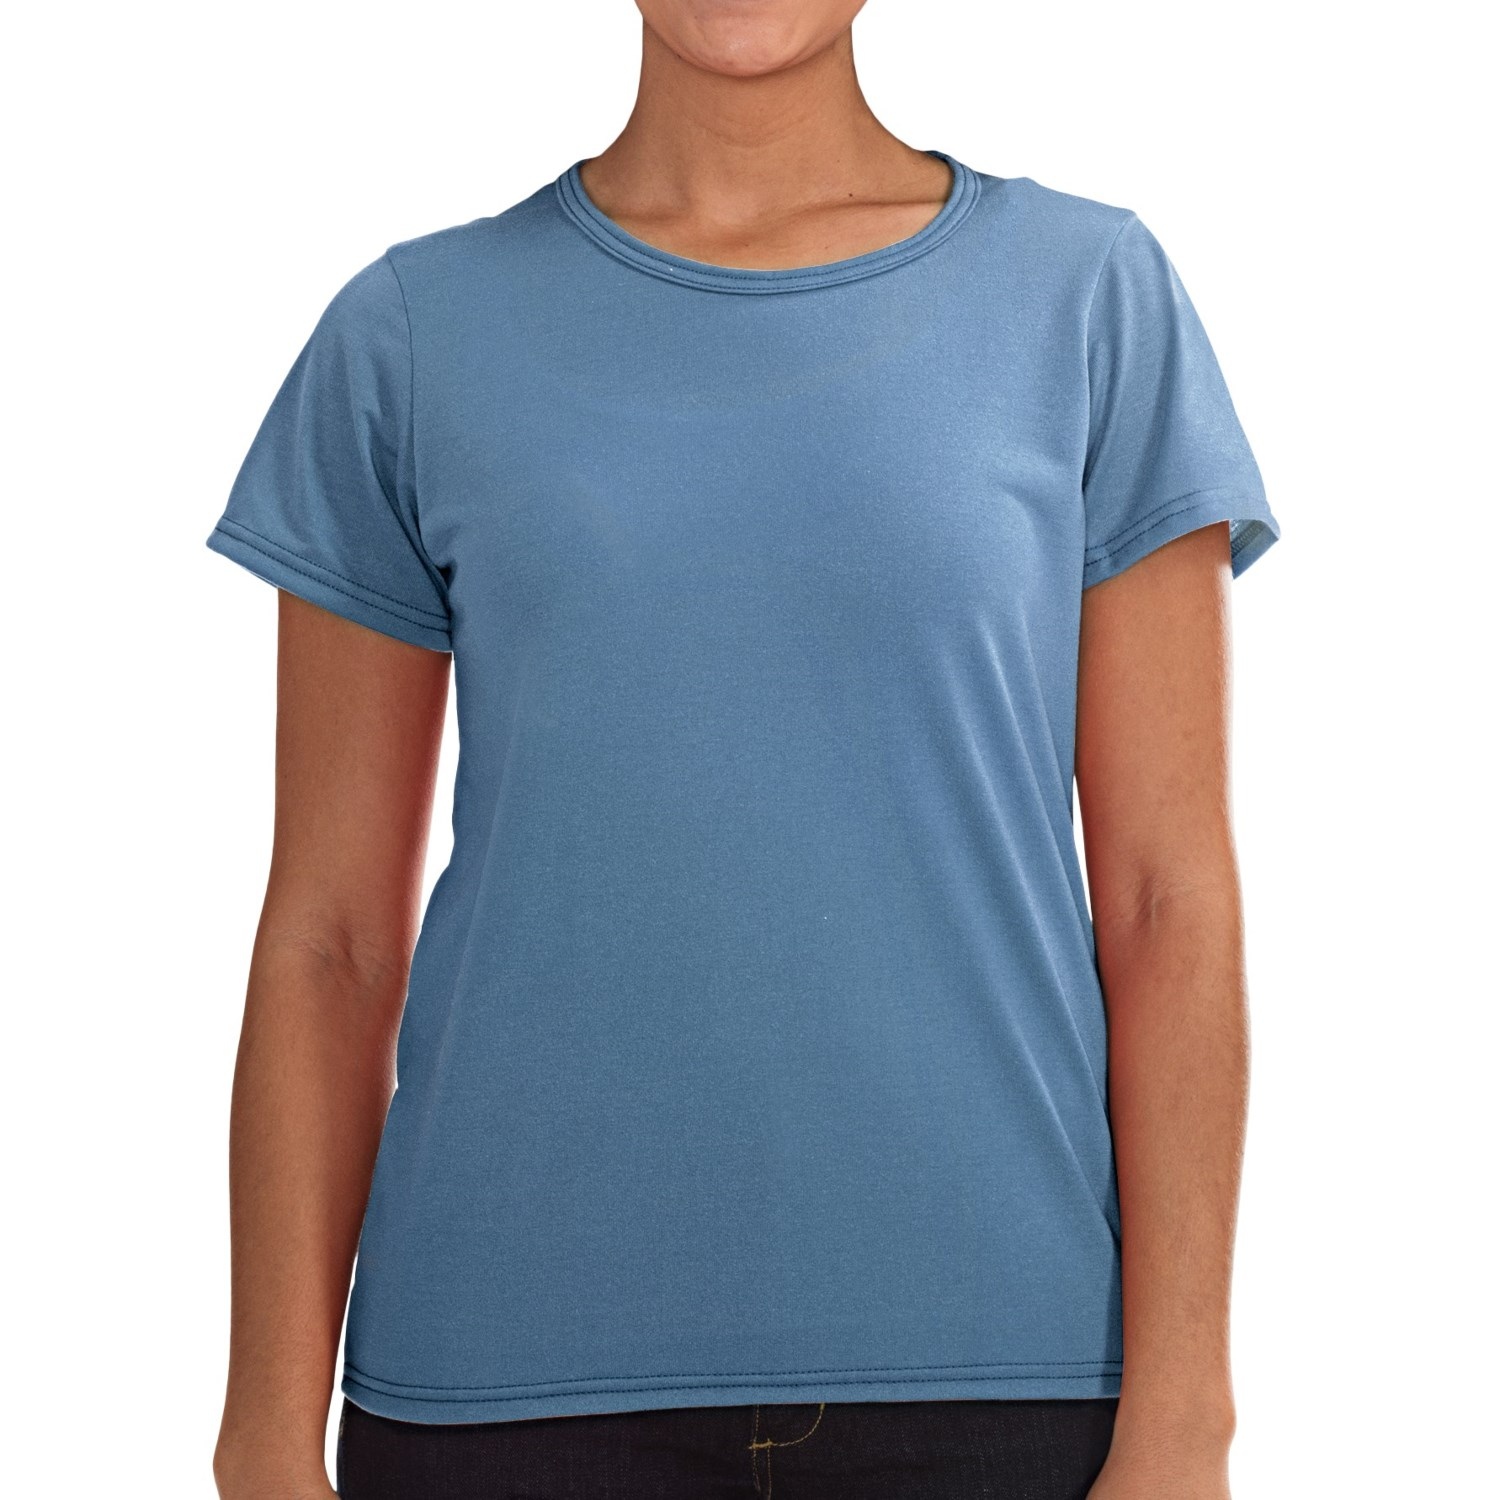 Wickers lightweight base layer t shirt for women save 70 for Womens base layer shirt